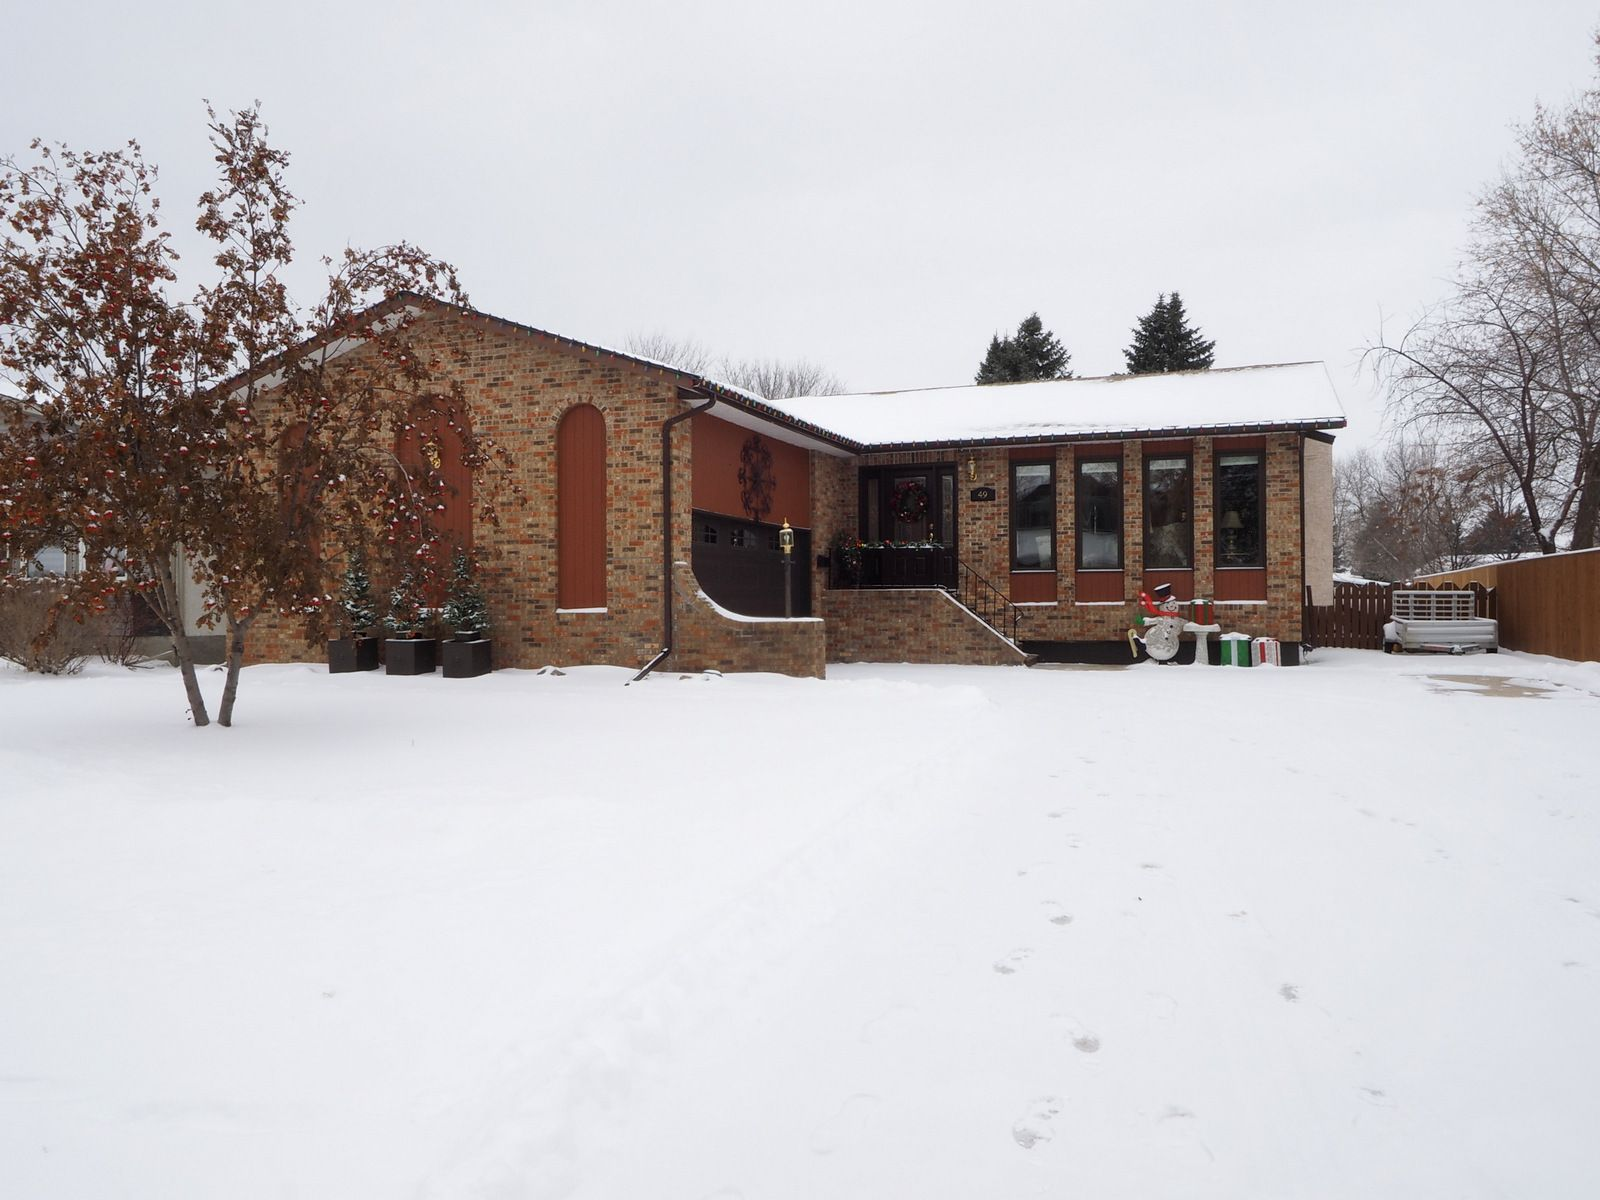 Main Photo: 49 Armstrong Street in Portage la Prairie: House for sale : MLS®# 202029785